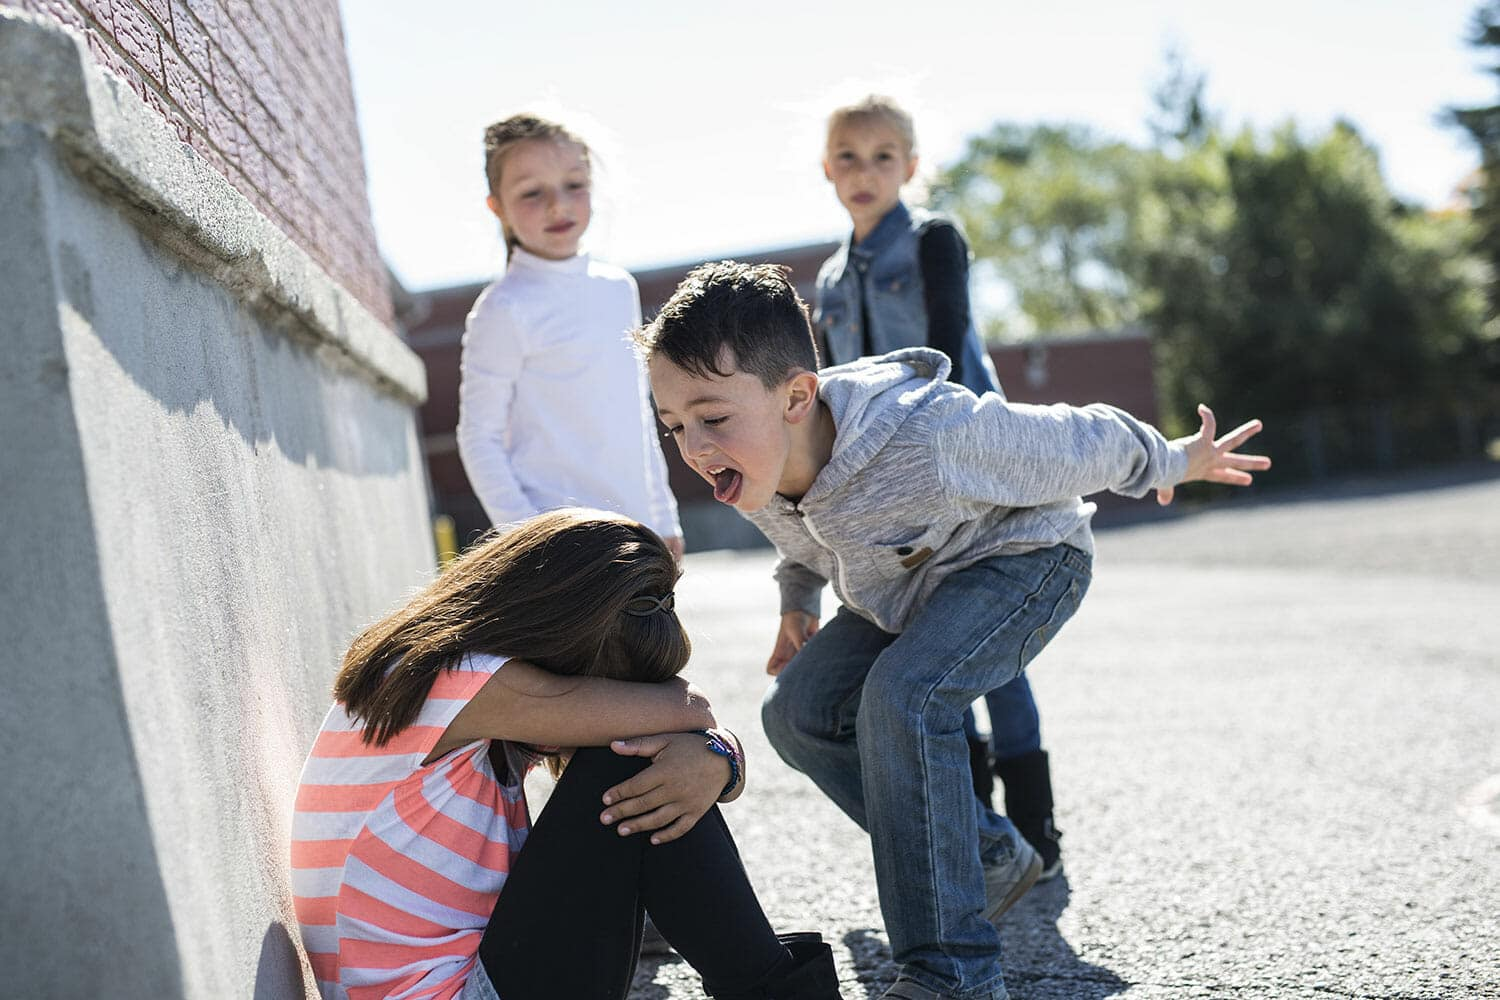 child acting out in school after separation